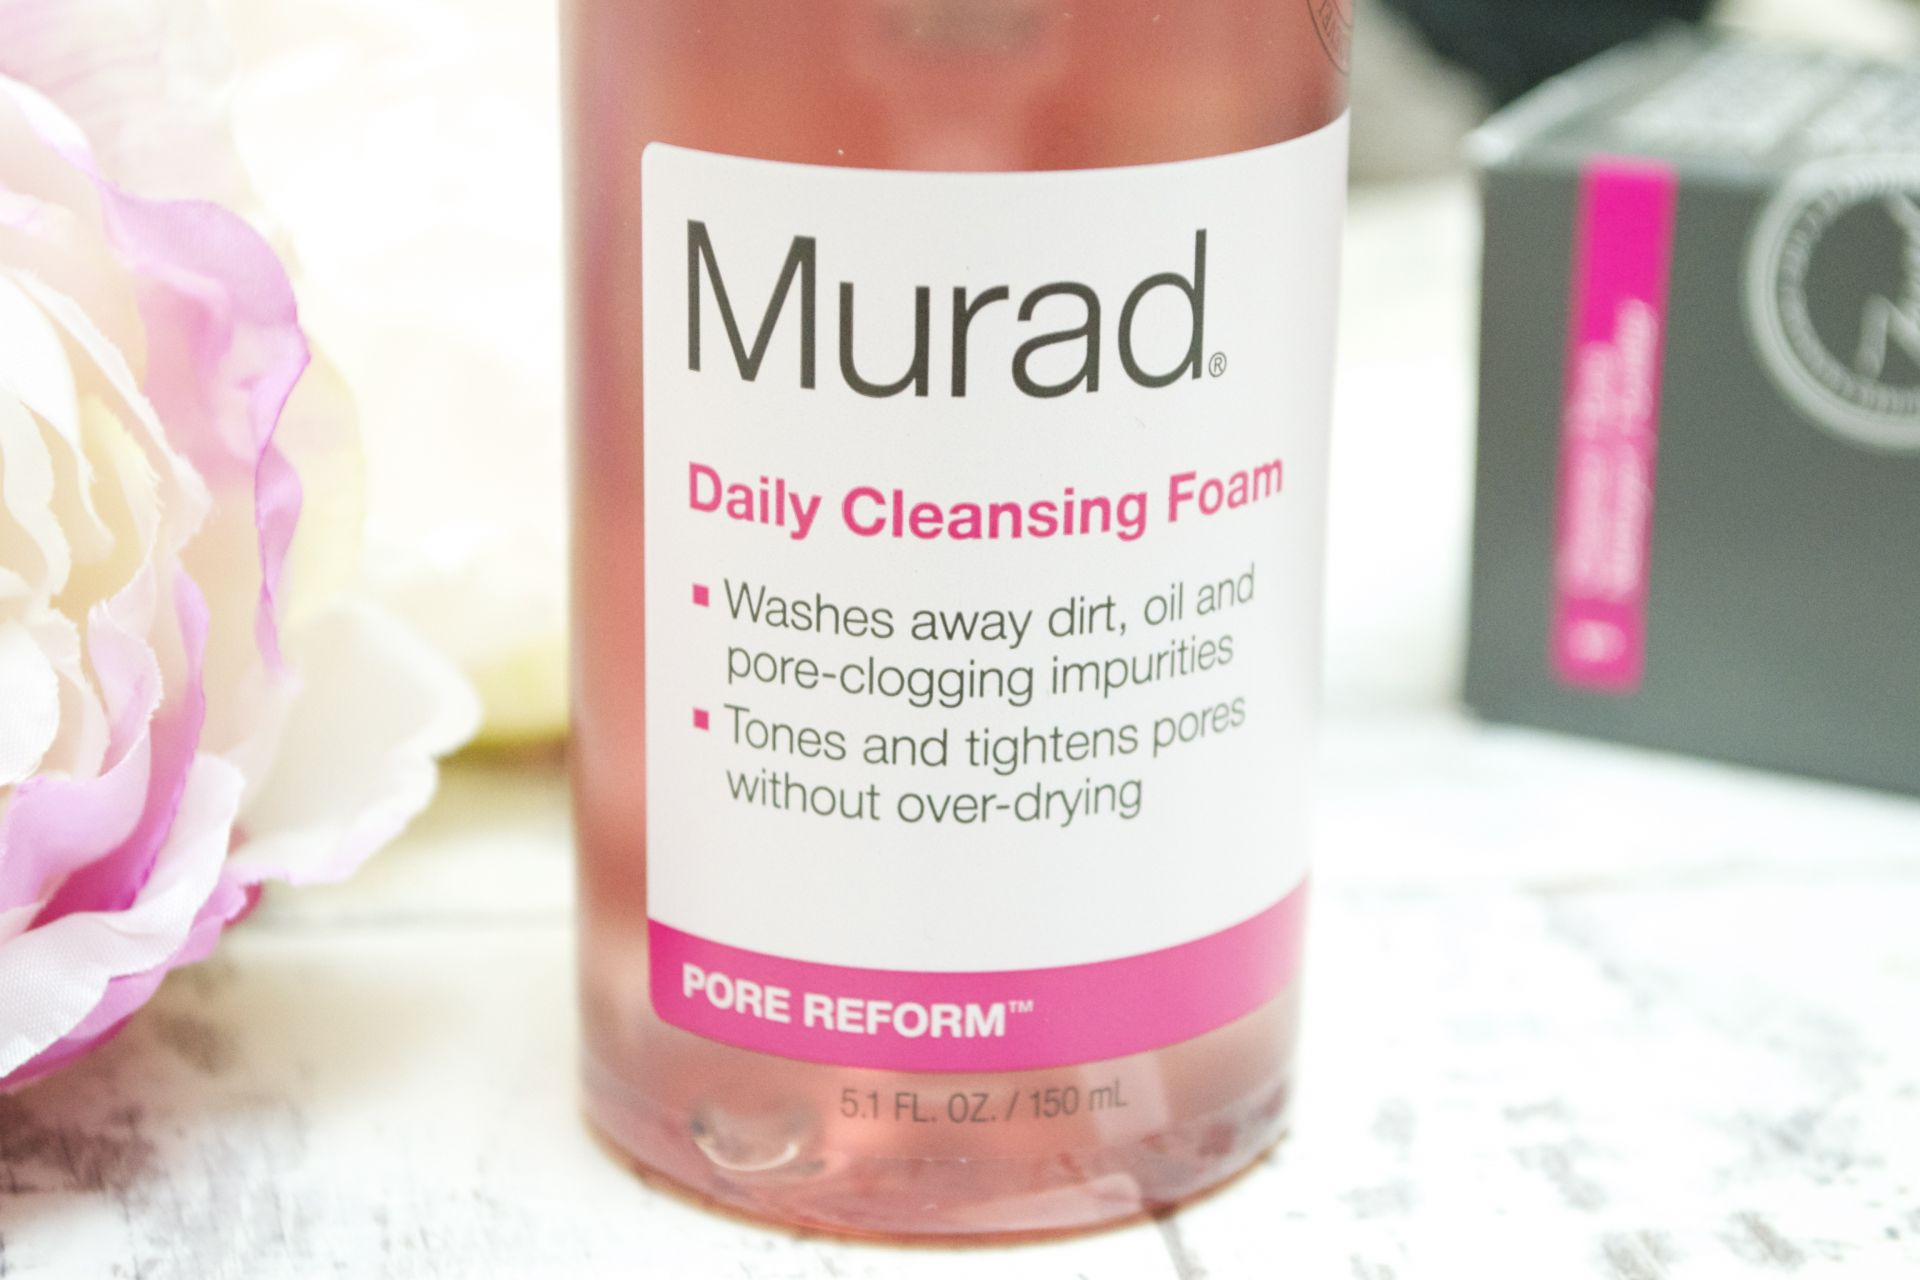 murad-daily-cleansing-foam